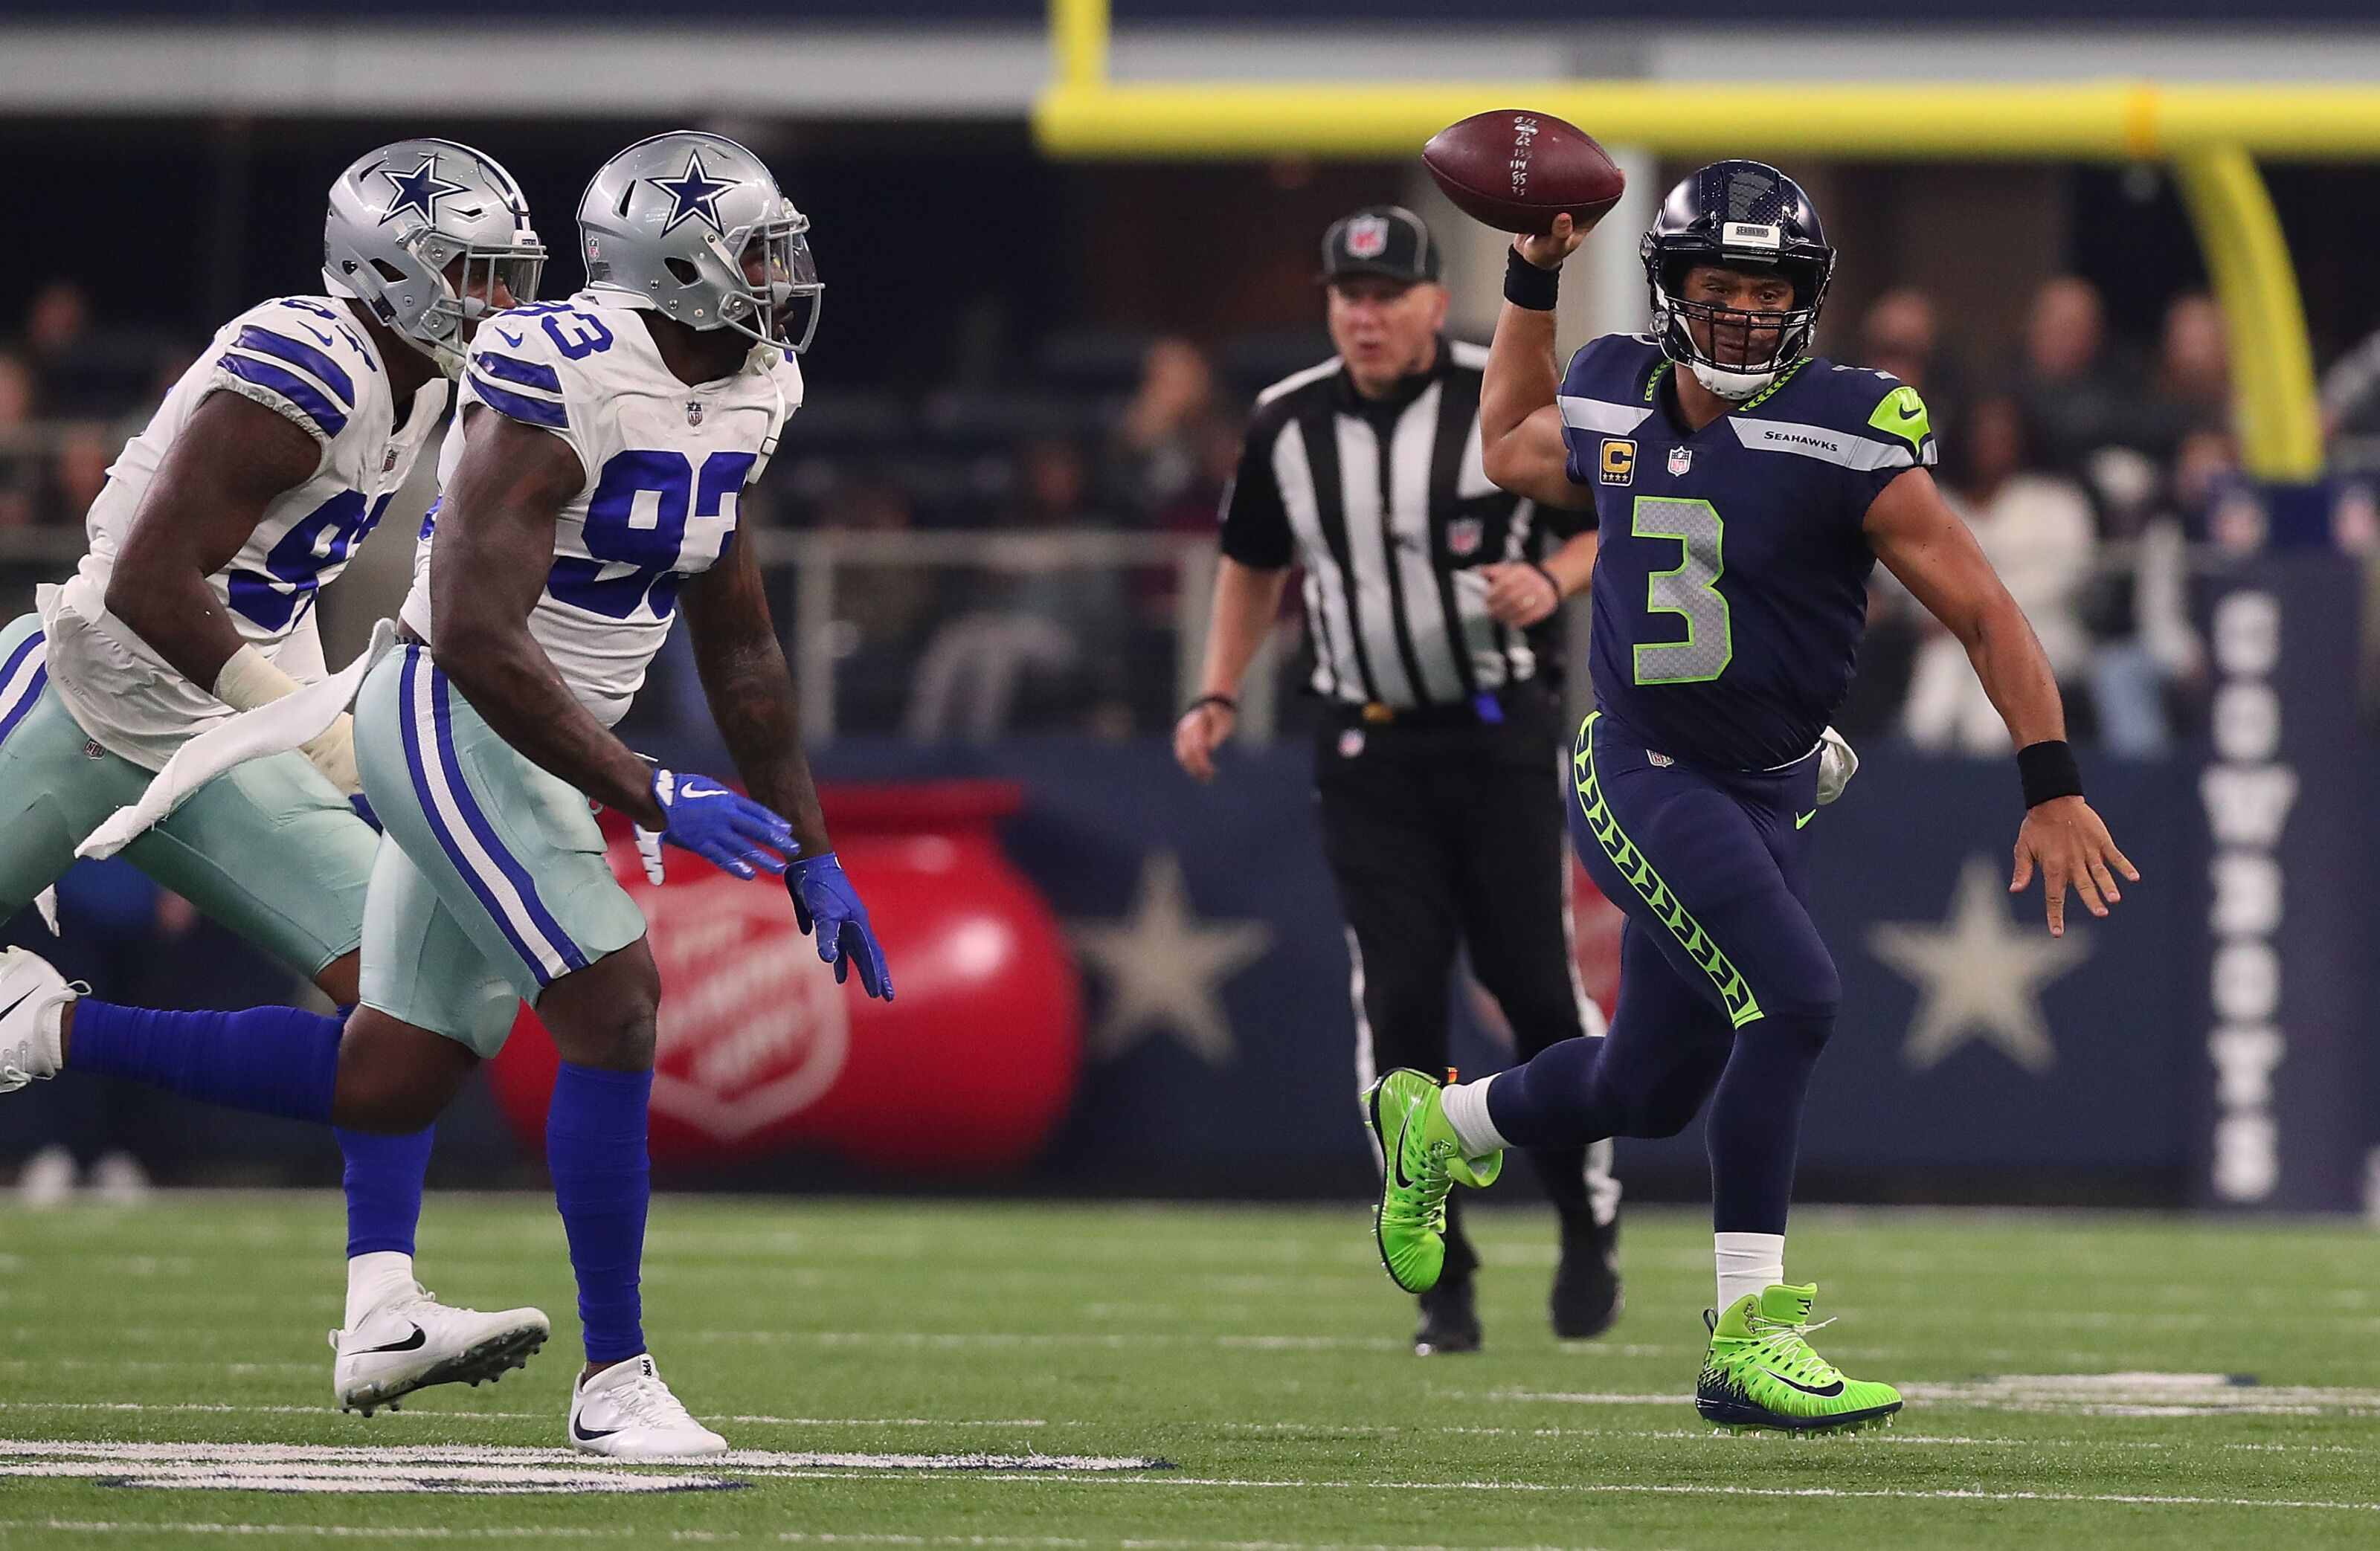 748cd1c5c29 Seahawks will beat the Cowboys on Wild Card weekend for 3 reasons